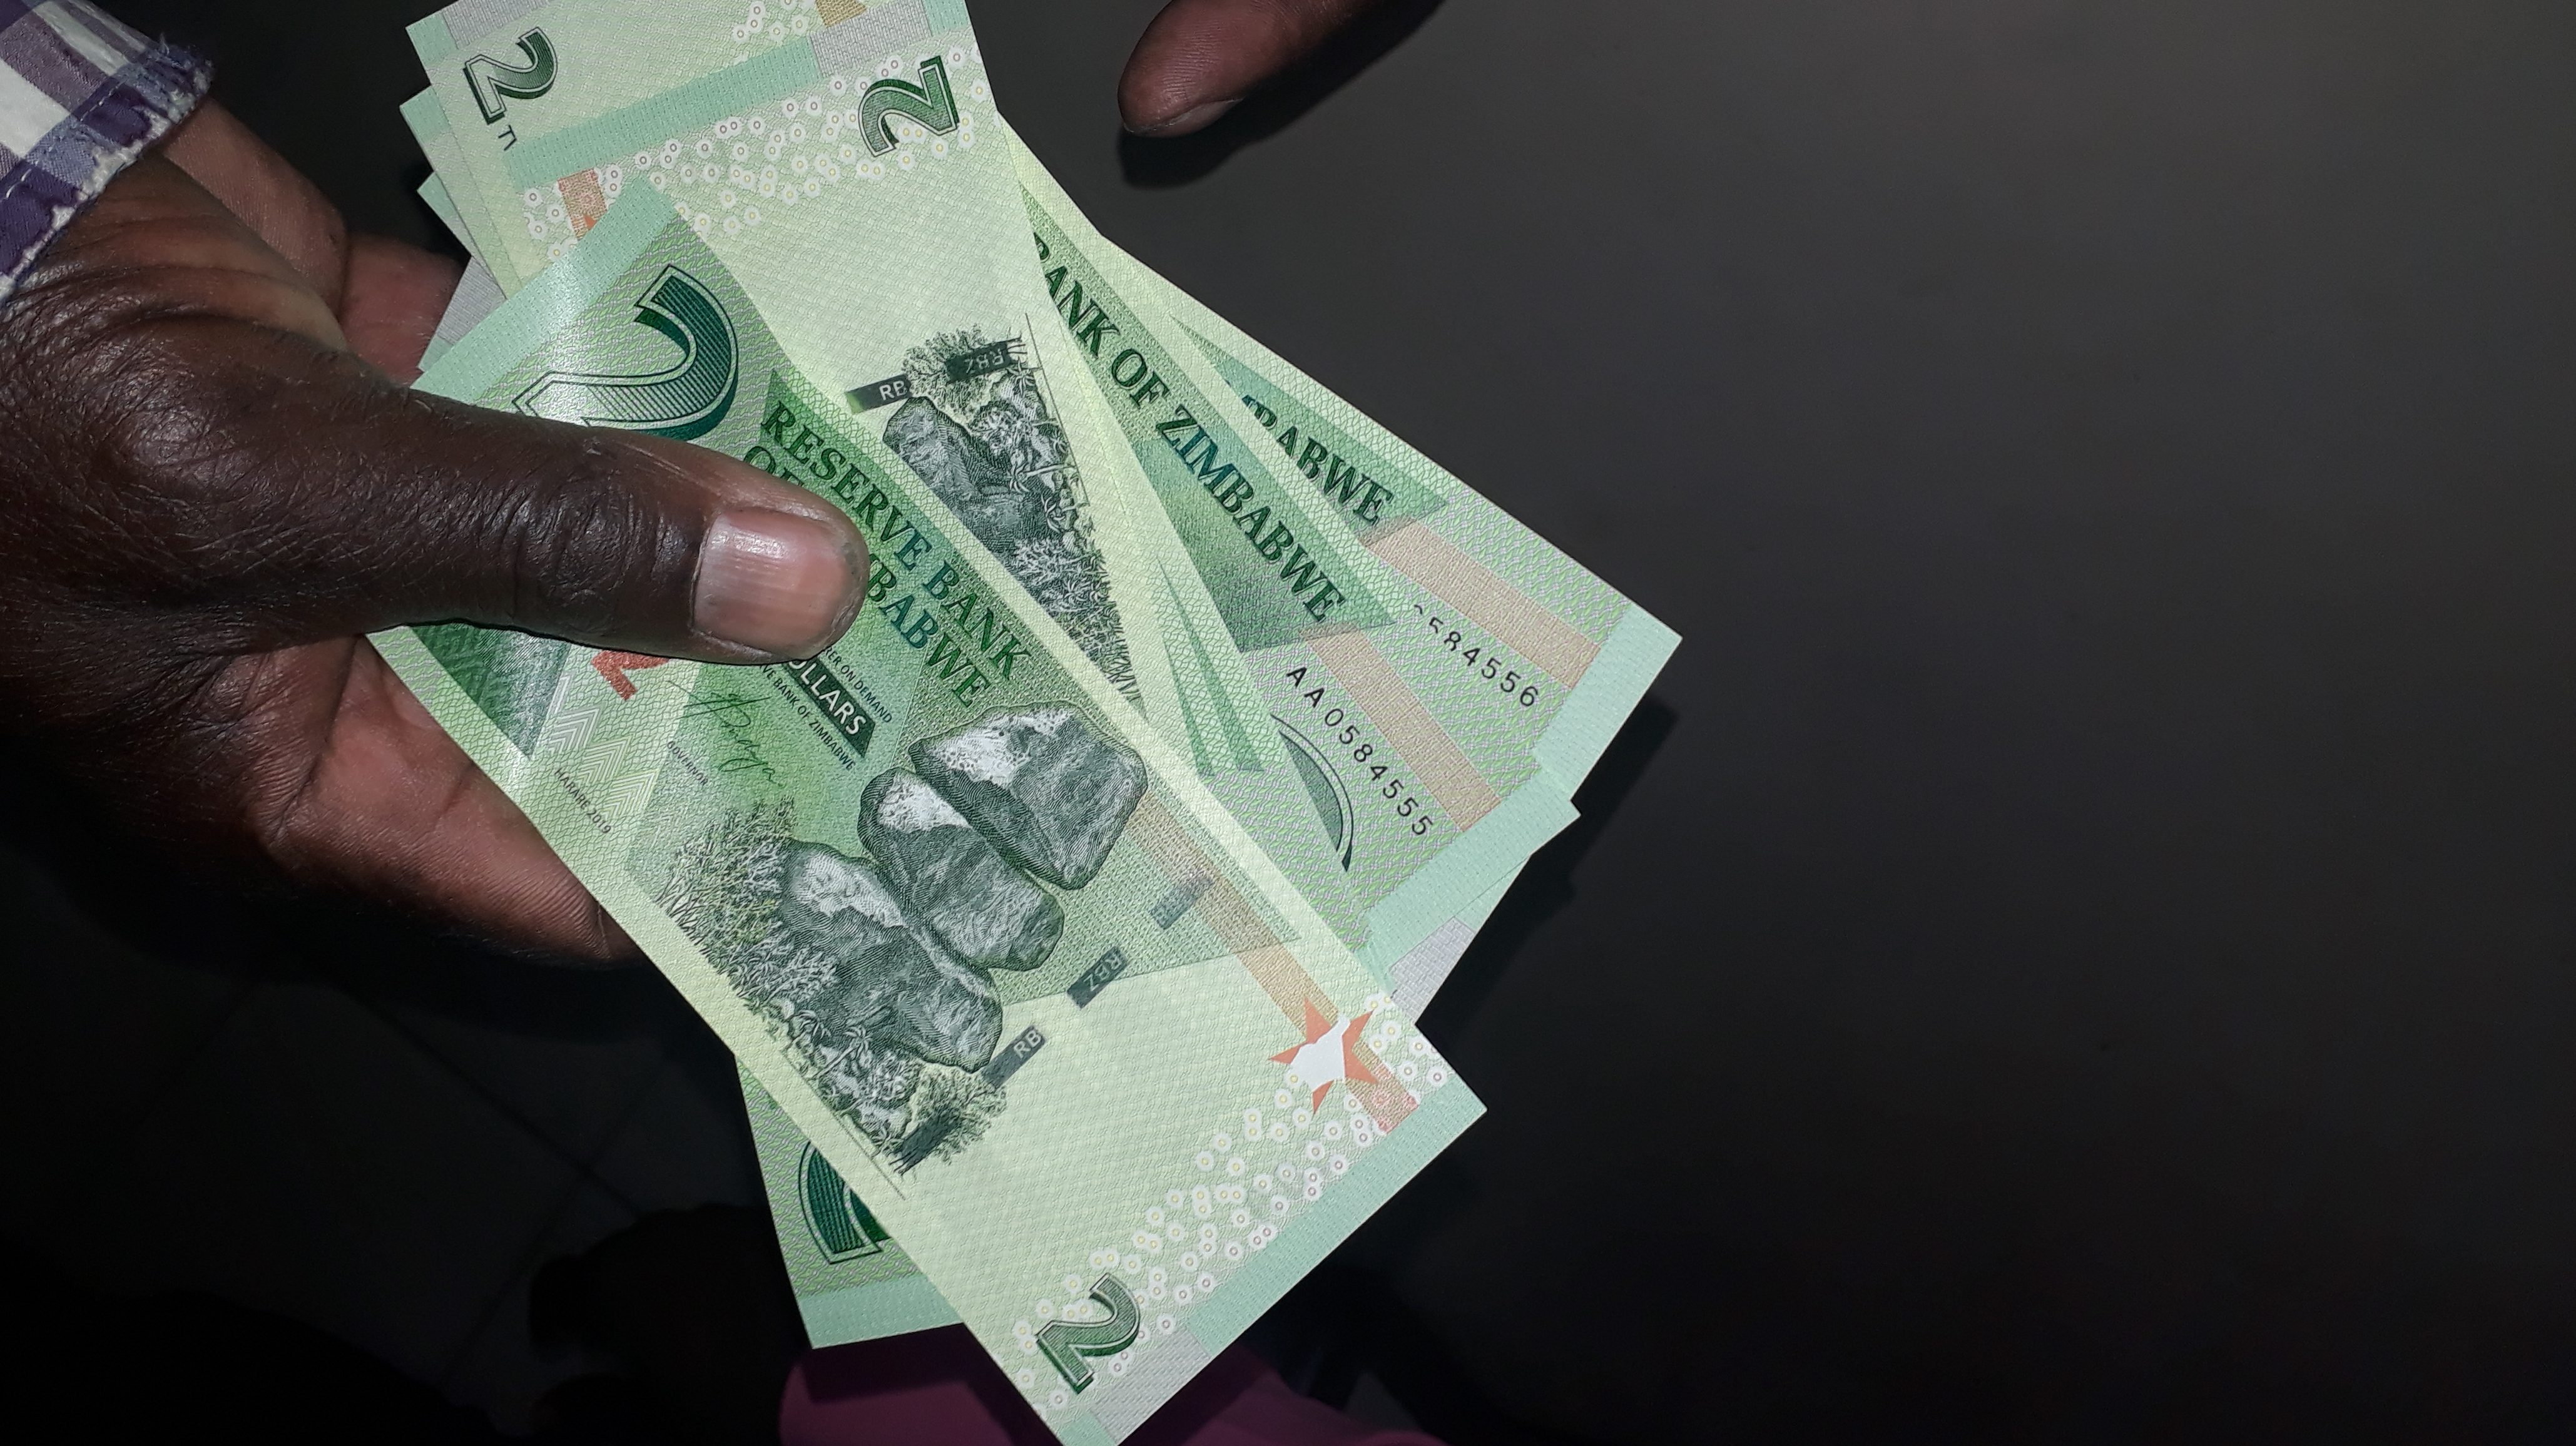 Zimbabwe is battling hyperinflation with new notes, but needs EcoCash